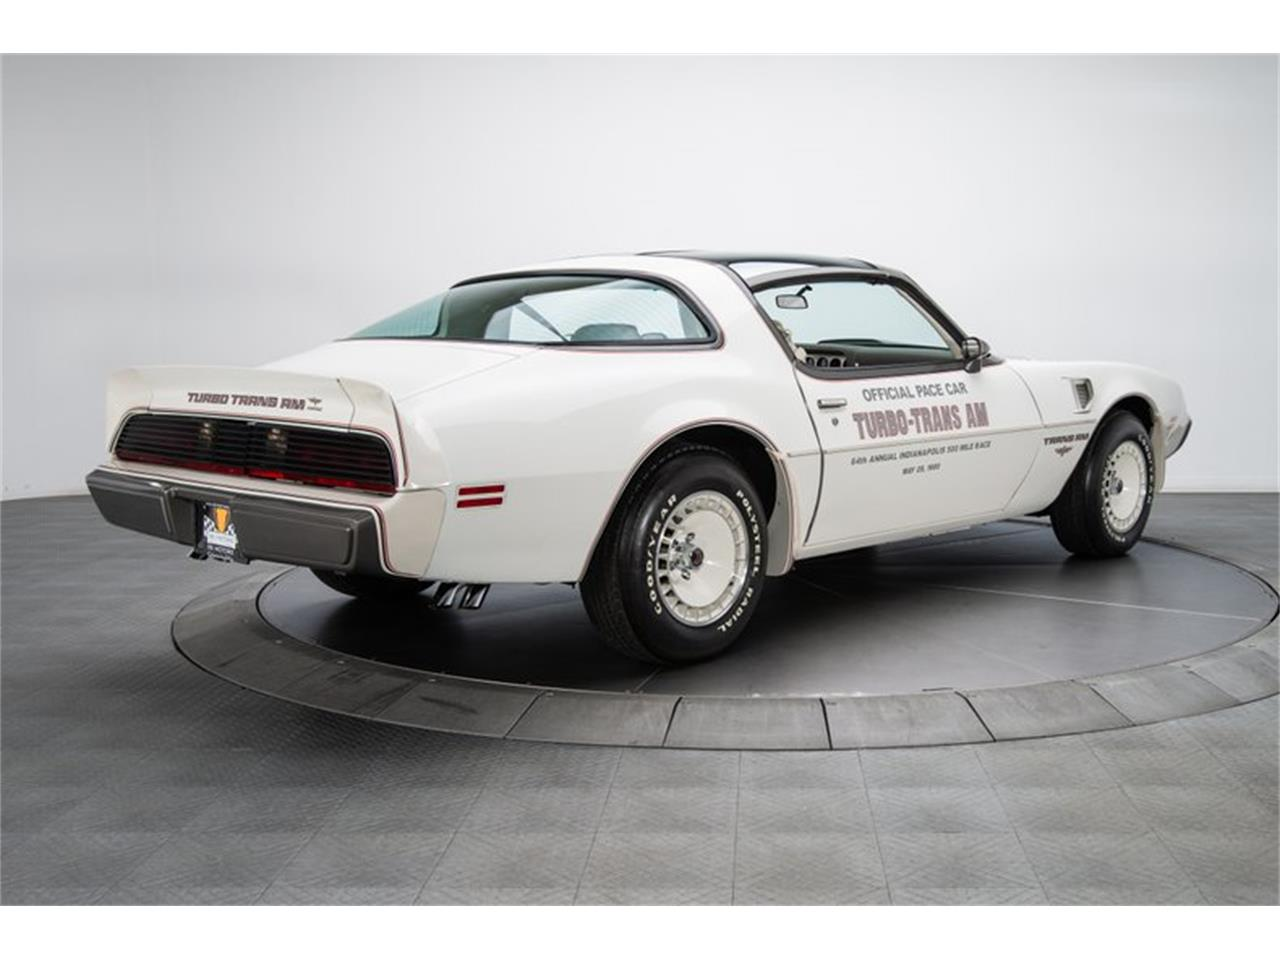 1980 Pontiac Firebird Trans Am Turbo Indy Pace Car Edition for sale in Charlotte, NC – photo 2